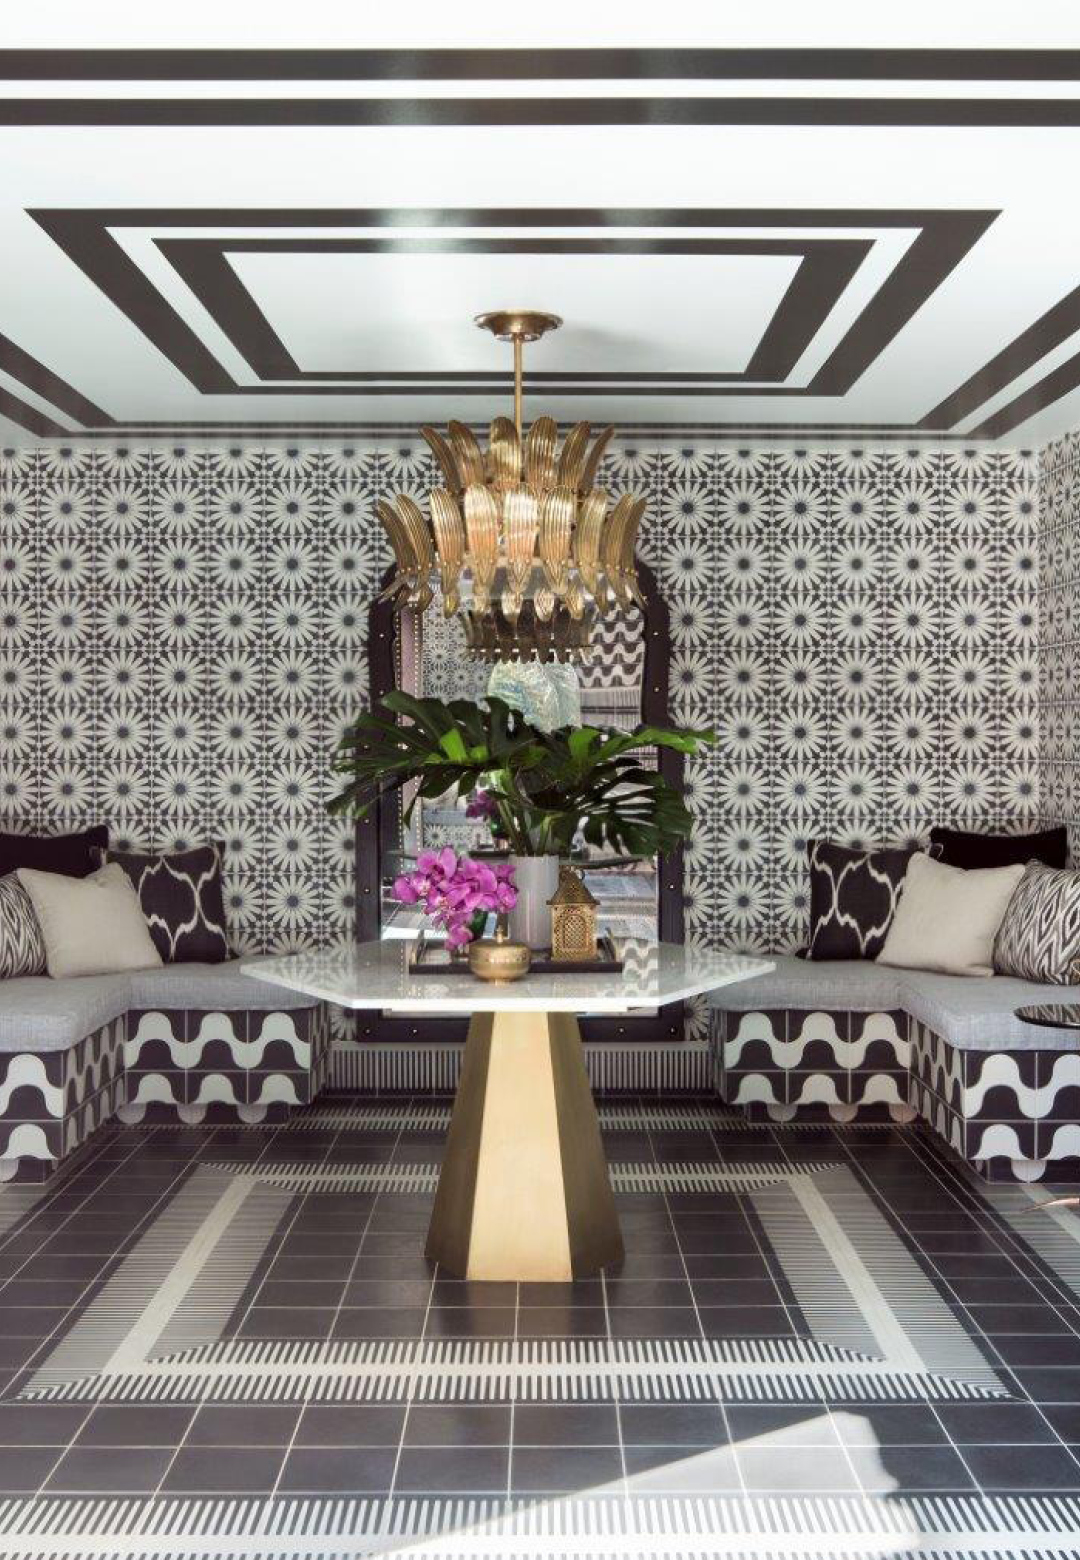 The lobby gives the guests a stunning preview of the graphic tiling work they can expect in the rooms |The Sands Hotel and Spa | Martyn Lawrence Bullard| STIR